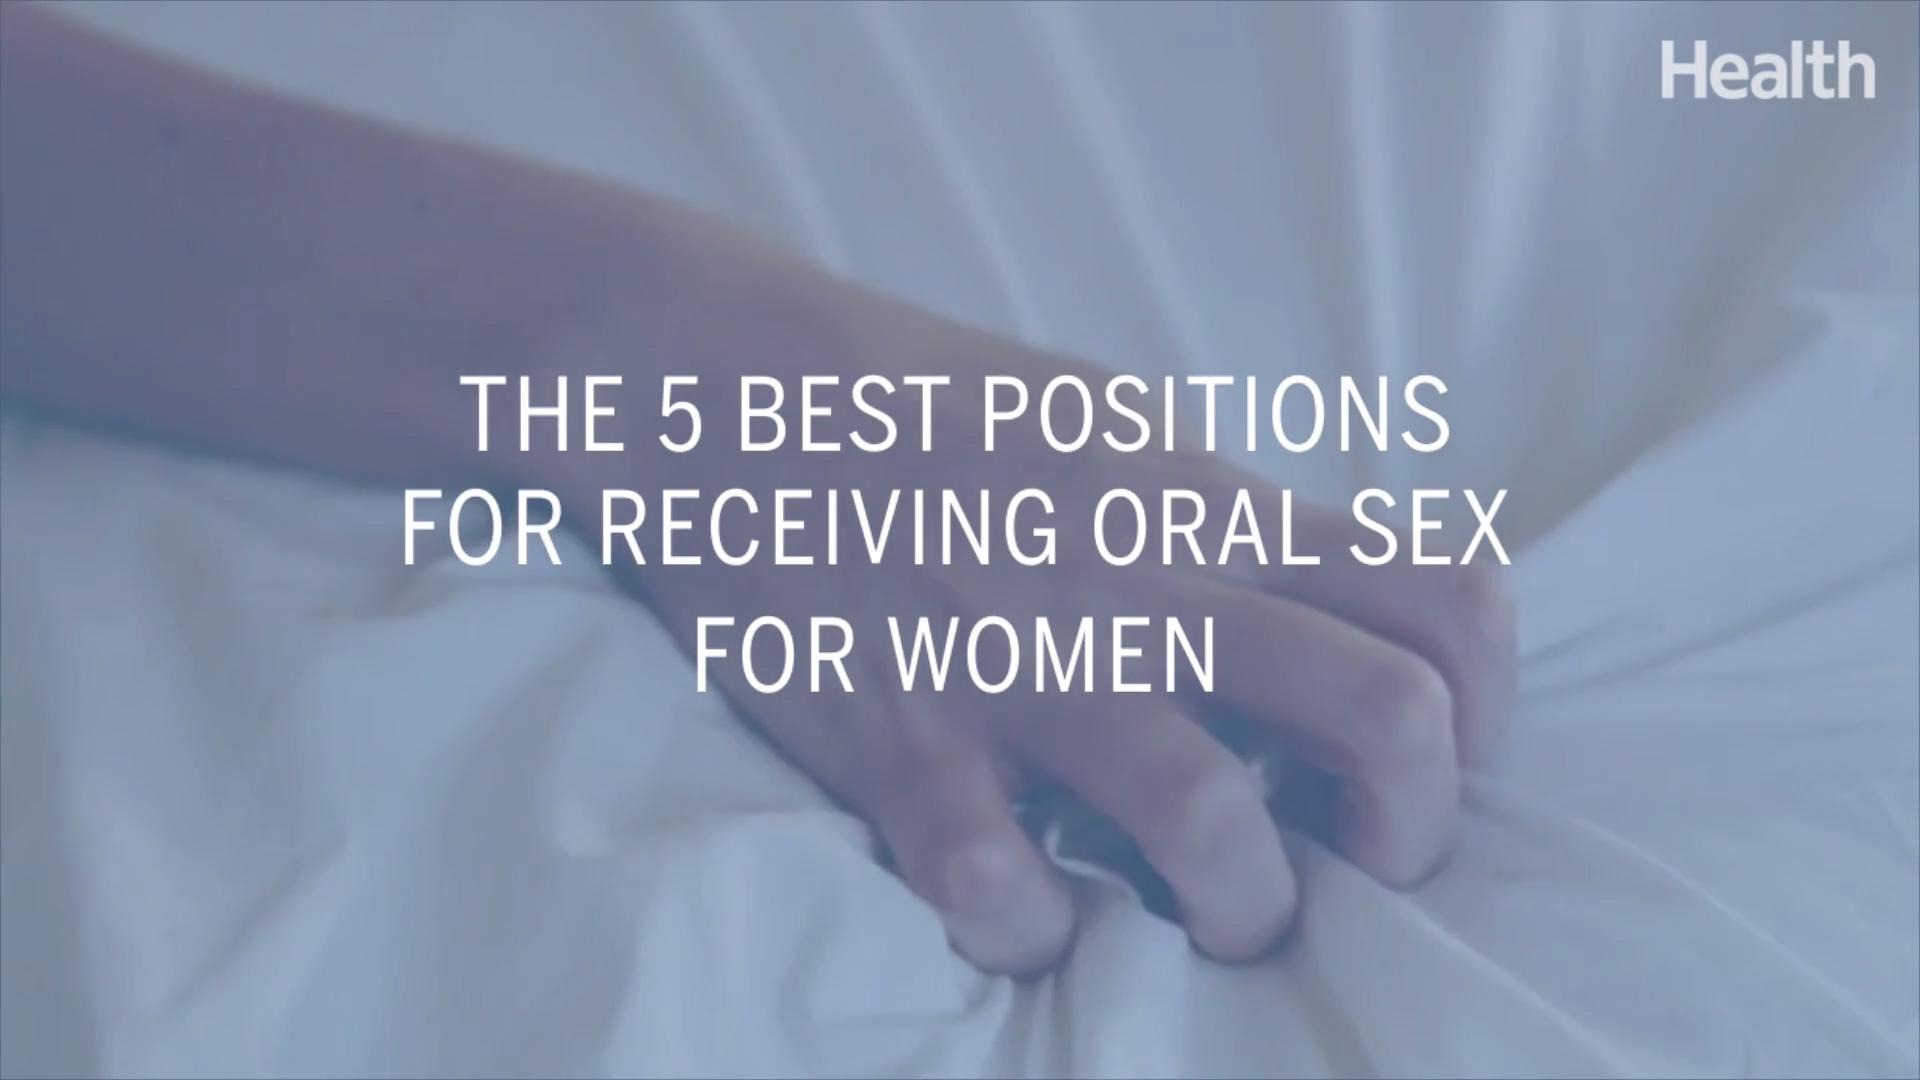 Think, best oral sex positions for women seems magnificent